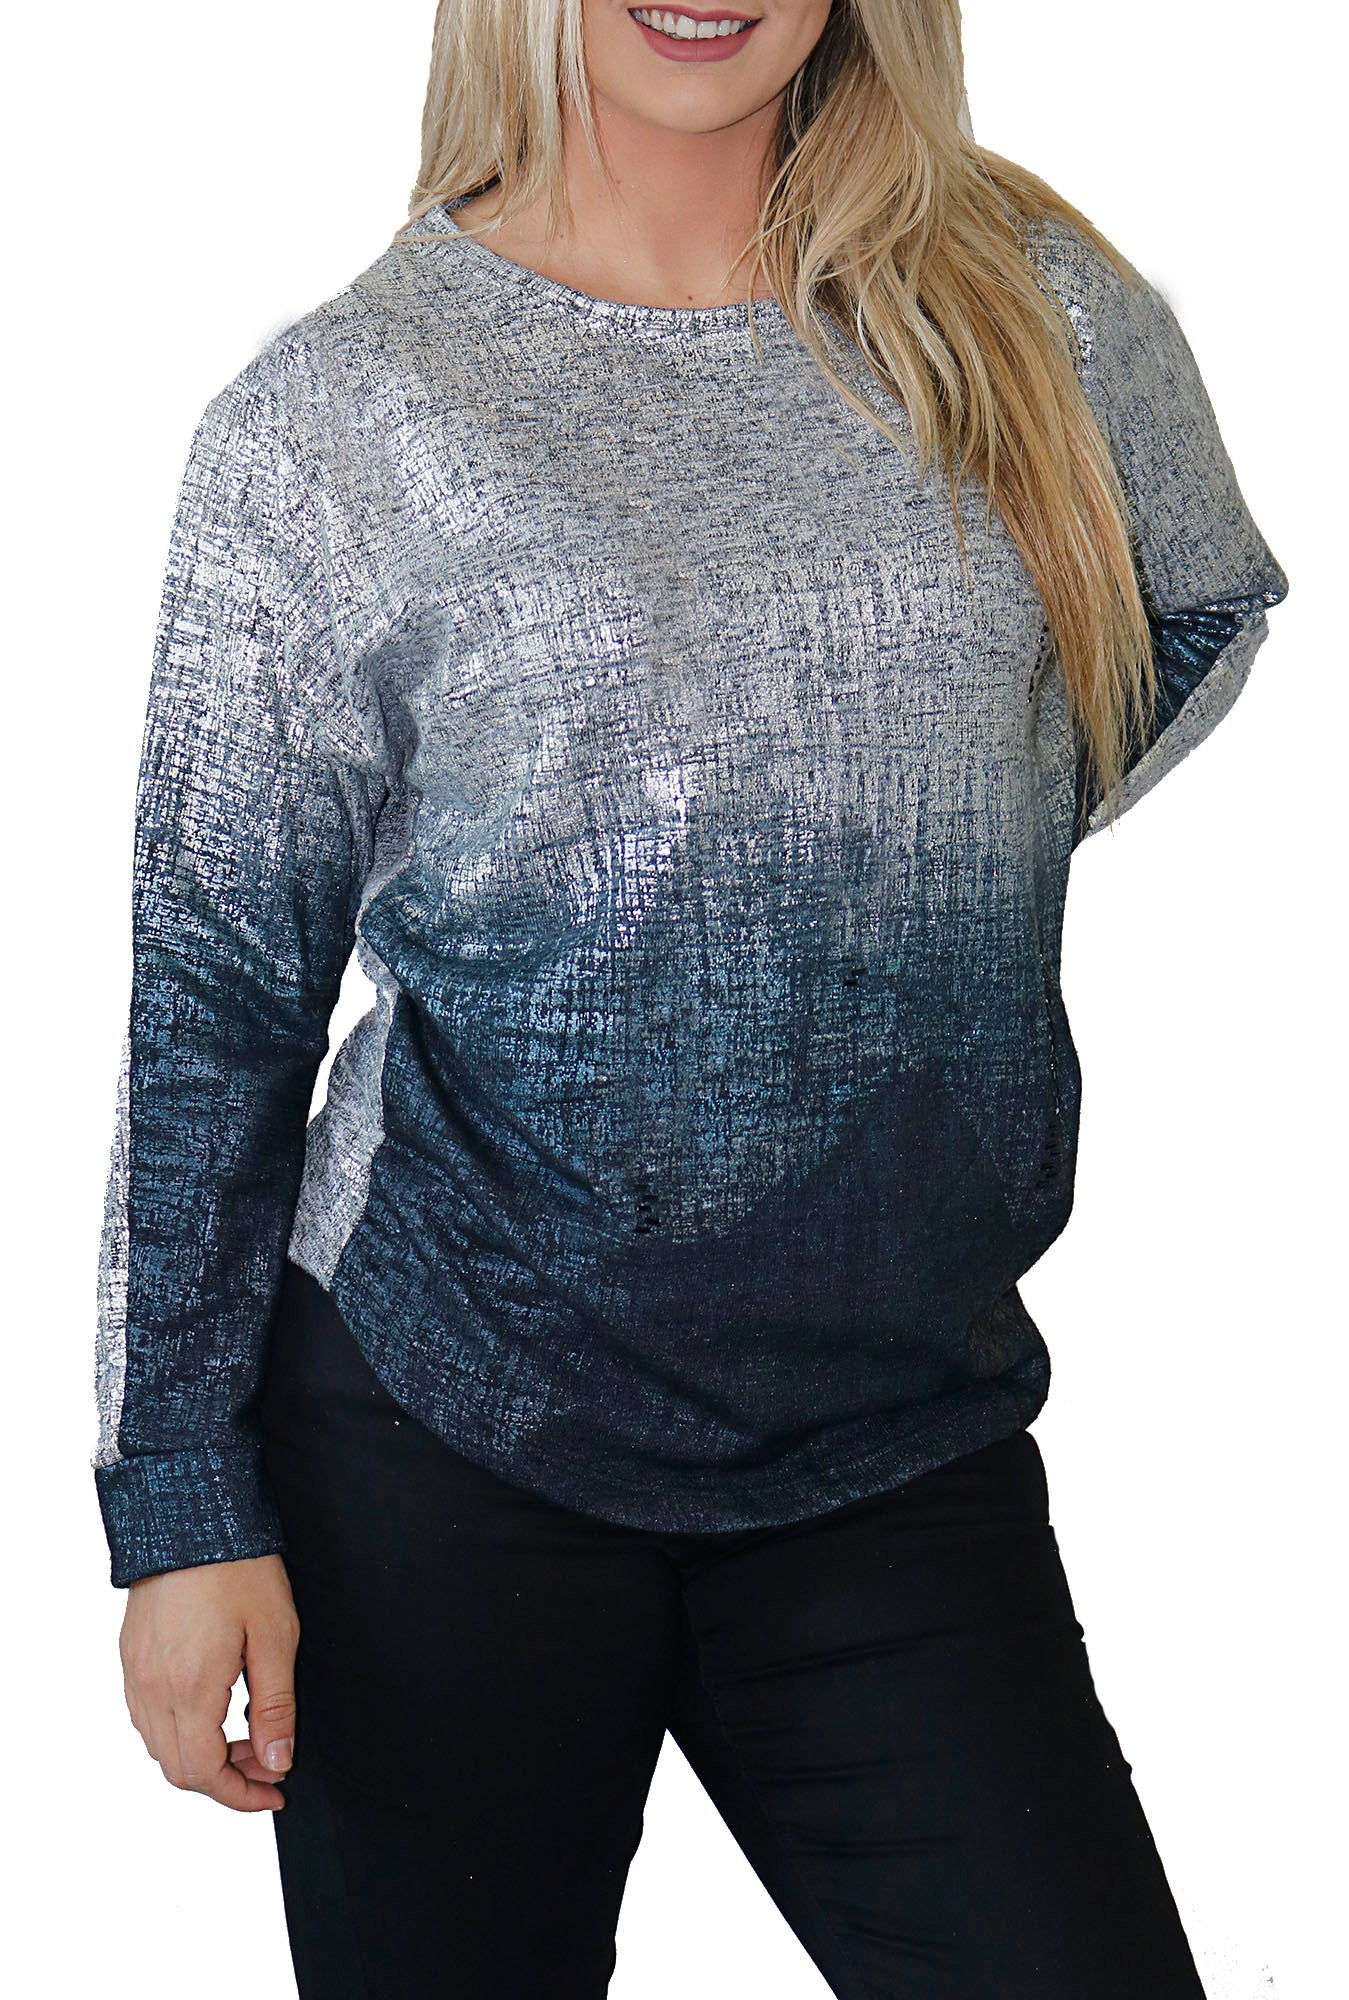 Impulse California Women's Silver Beaded Sweater